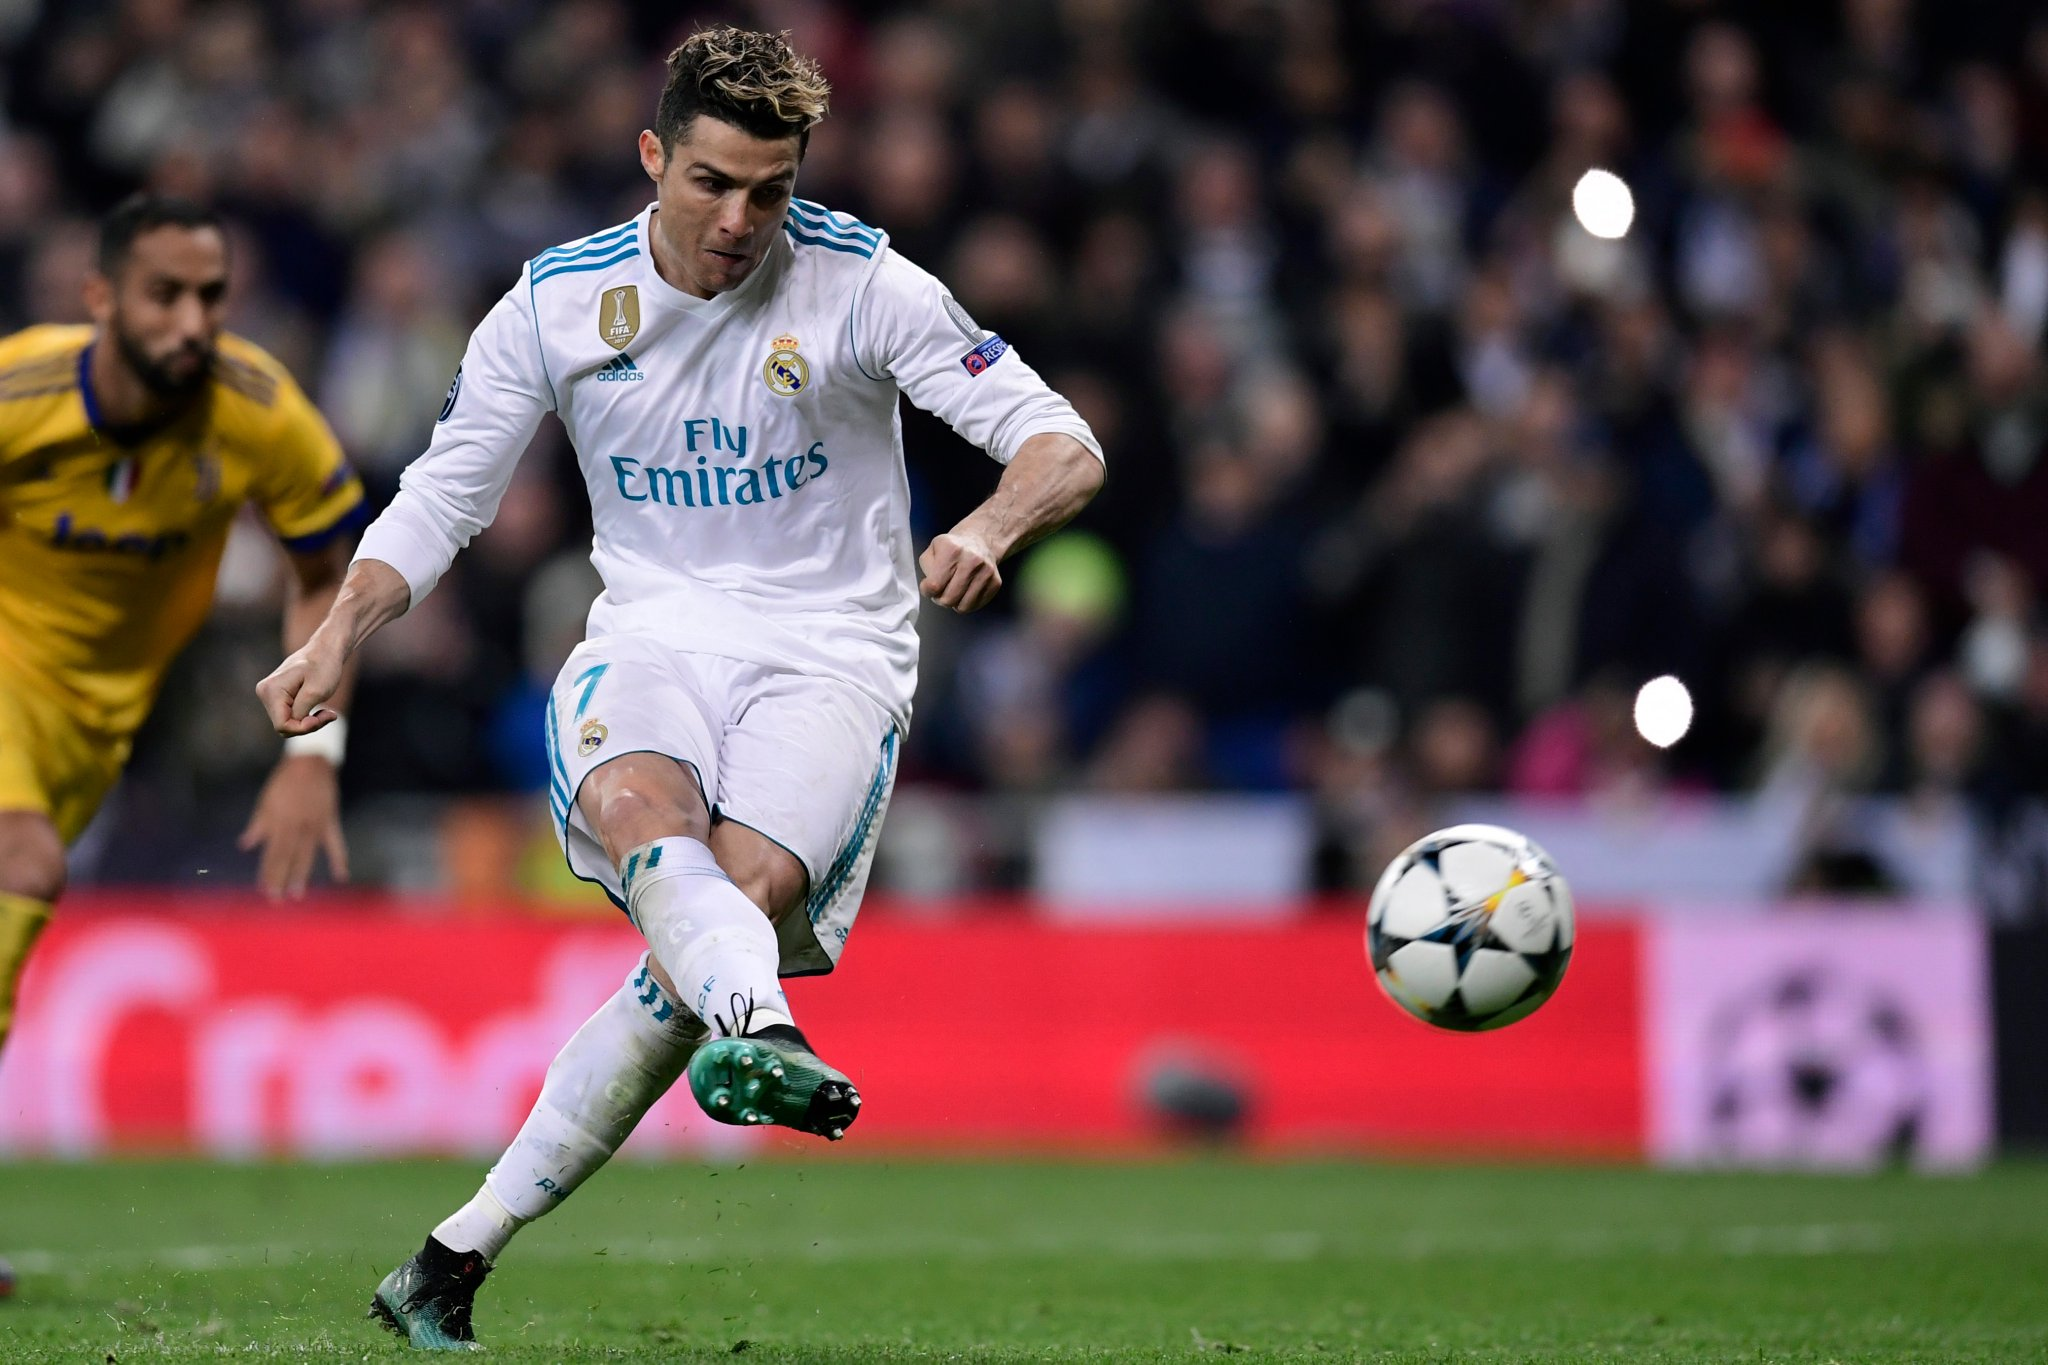 Ronaldo: I Don't Understand Why Juventus Protested Correct Penalty Decision